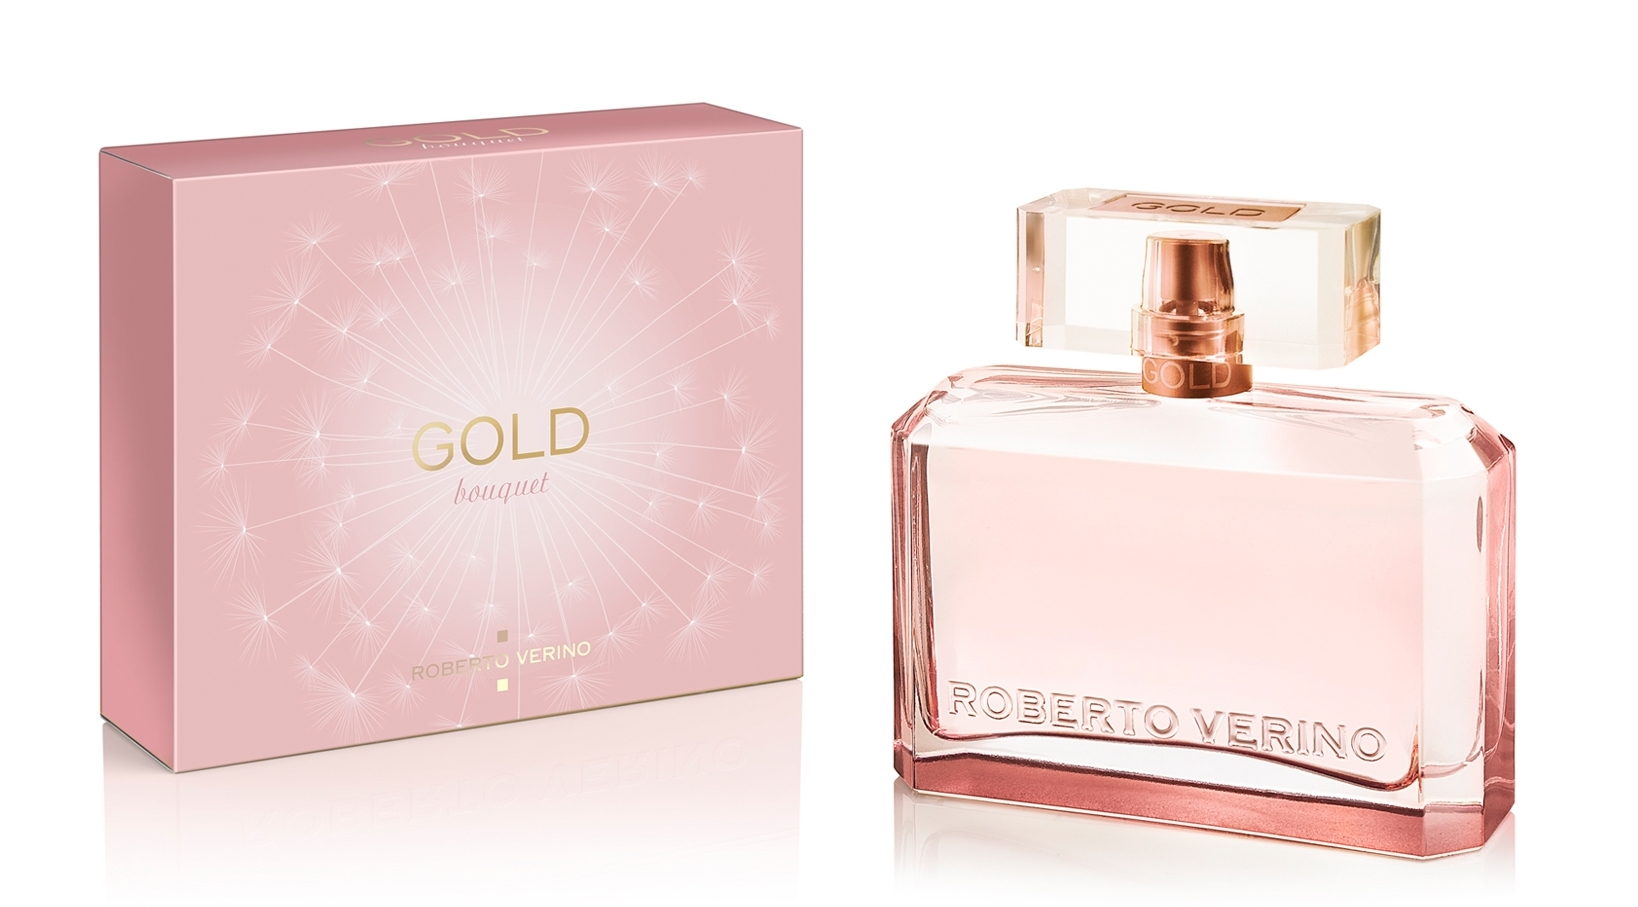 ROBERTO VERINO GOLD BOUQUET EDP 50 ML